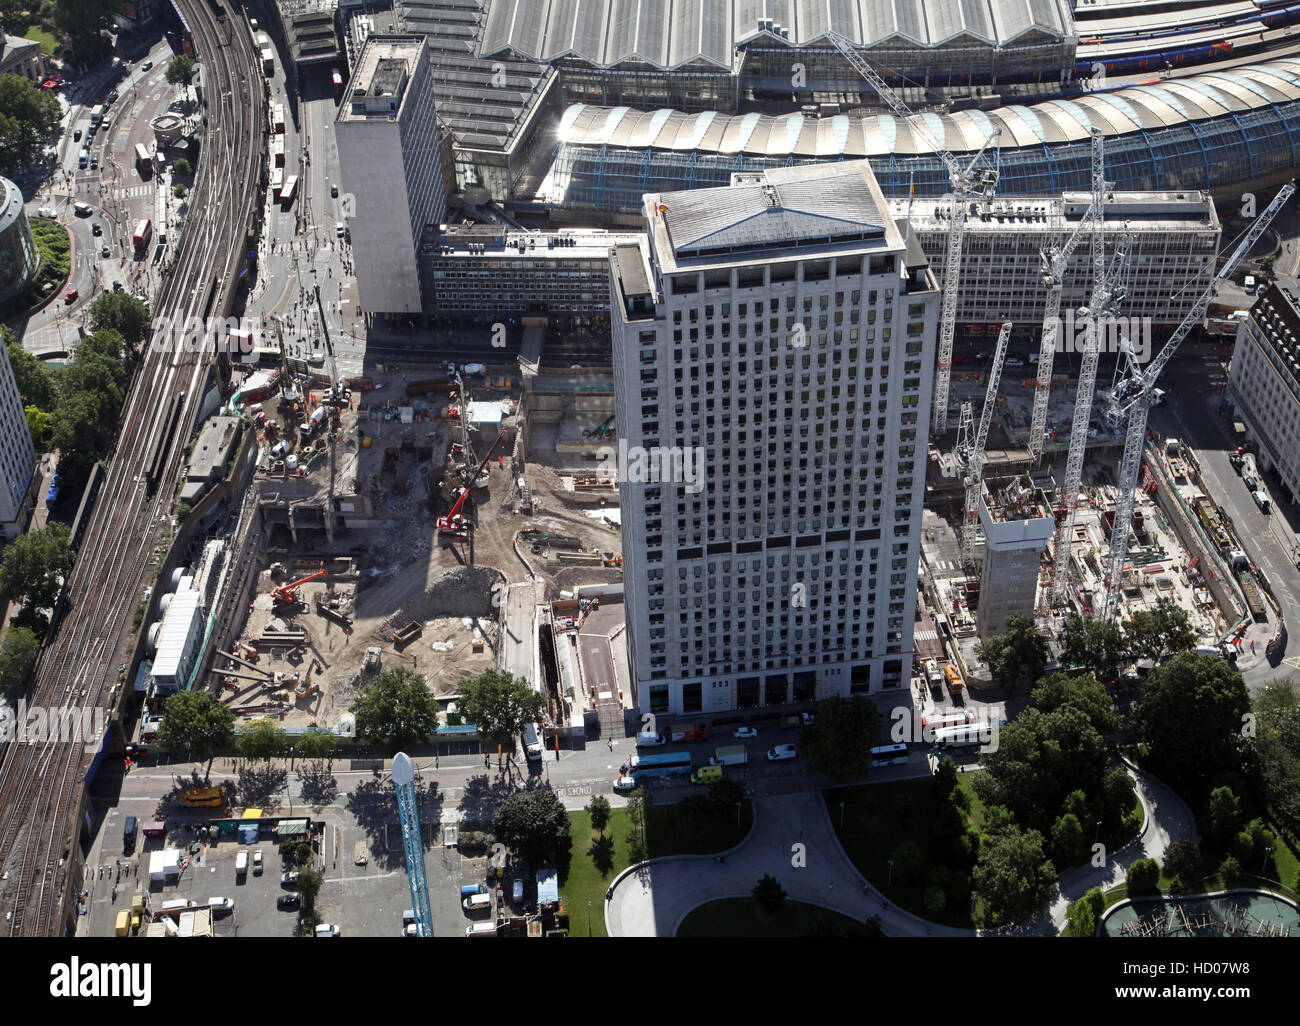 aerial view of The Shell Centre Redevelopment Project on London's South Bank, England, UK - Stock Image